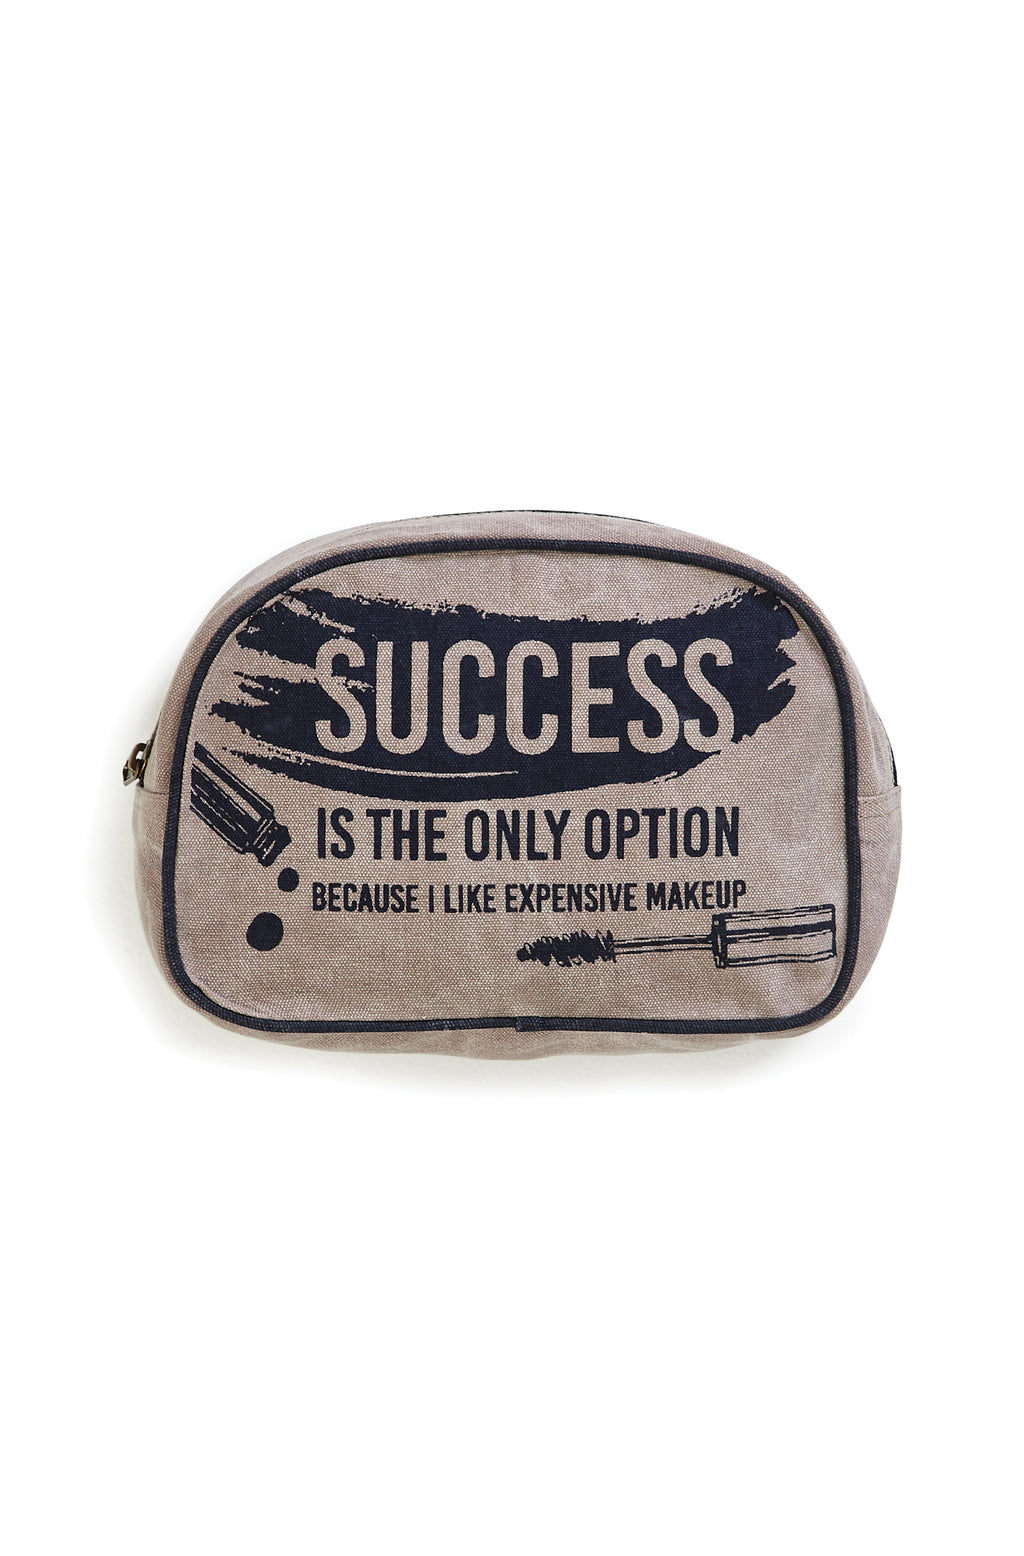 Success is the only option Makeup Bag